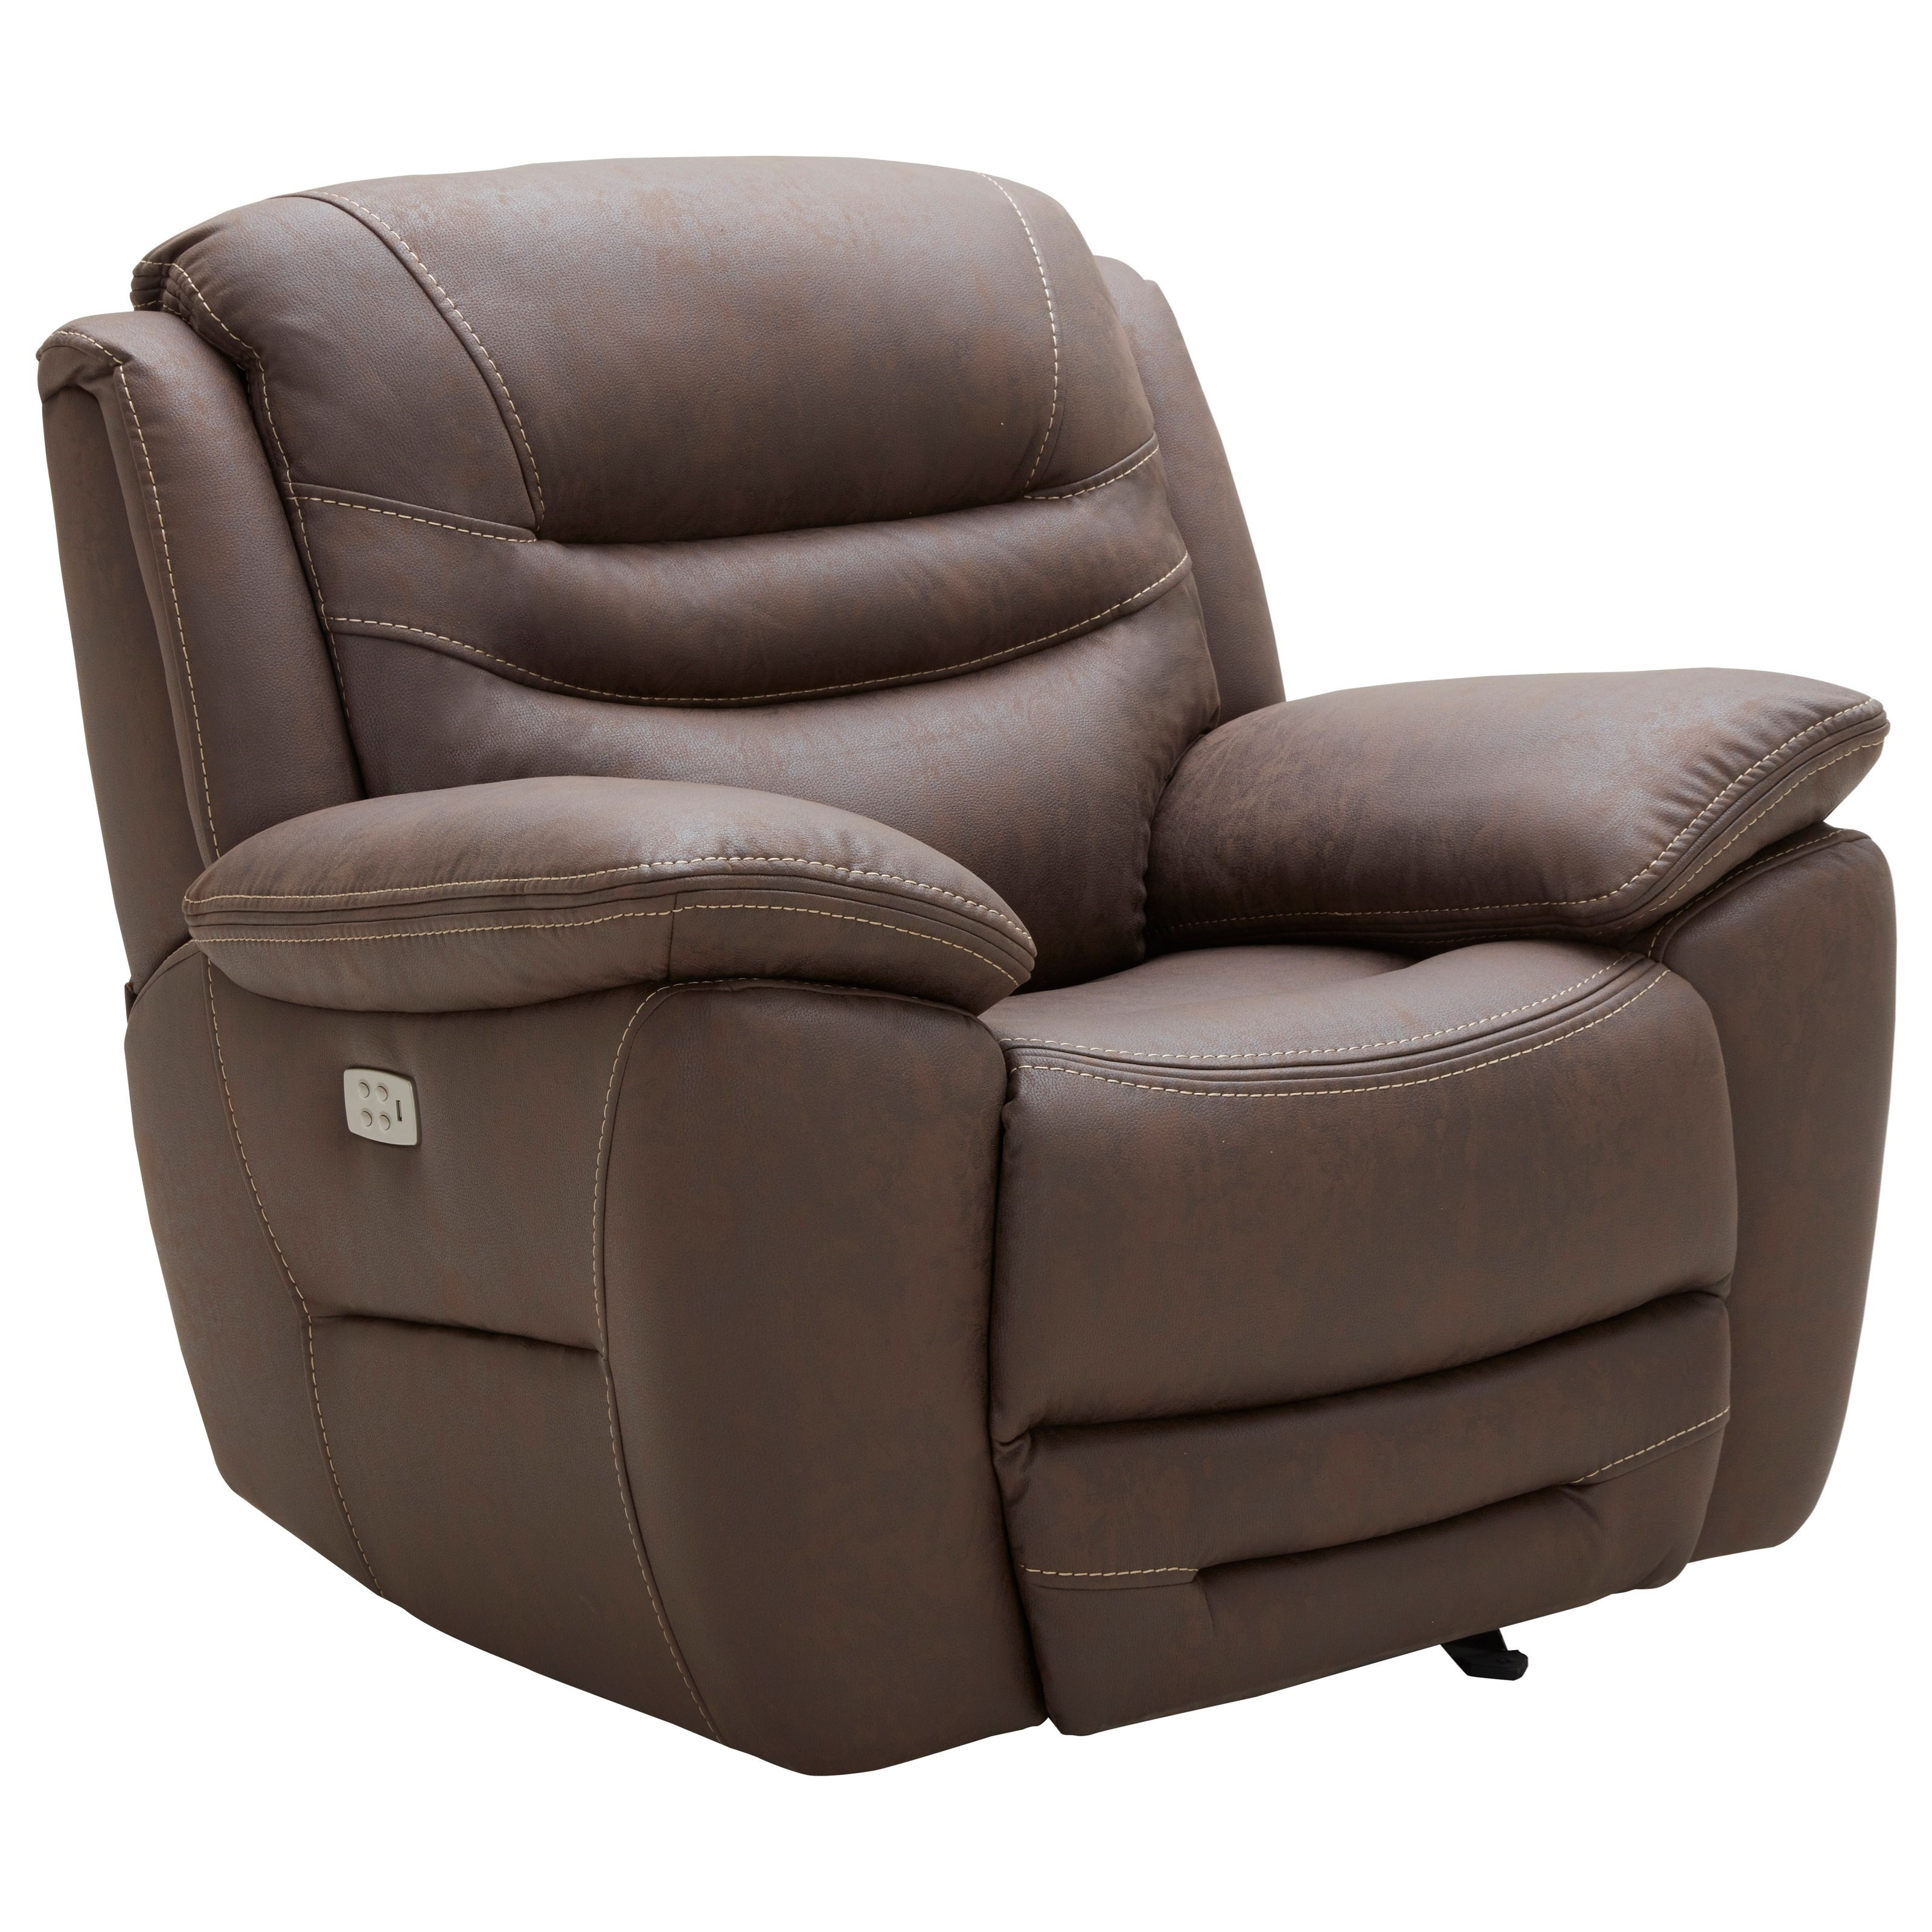 083 Power Seat Recliner - Wallhugger in Splash Chocolate or Tan $679.99